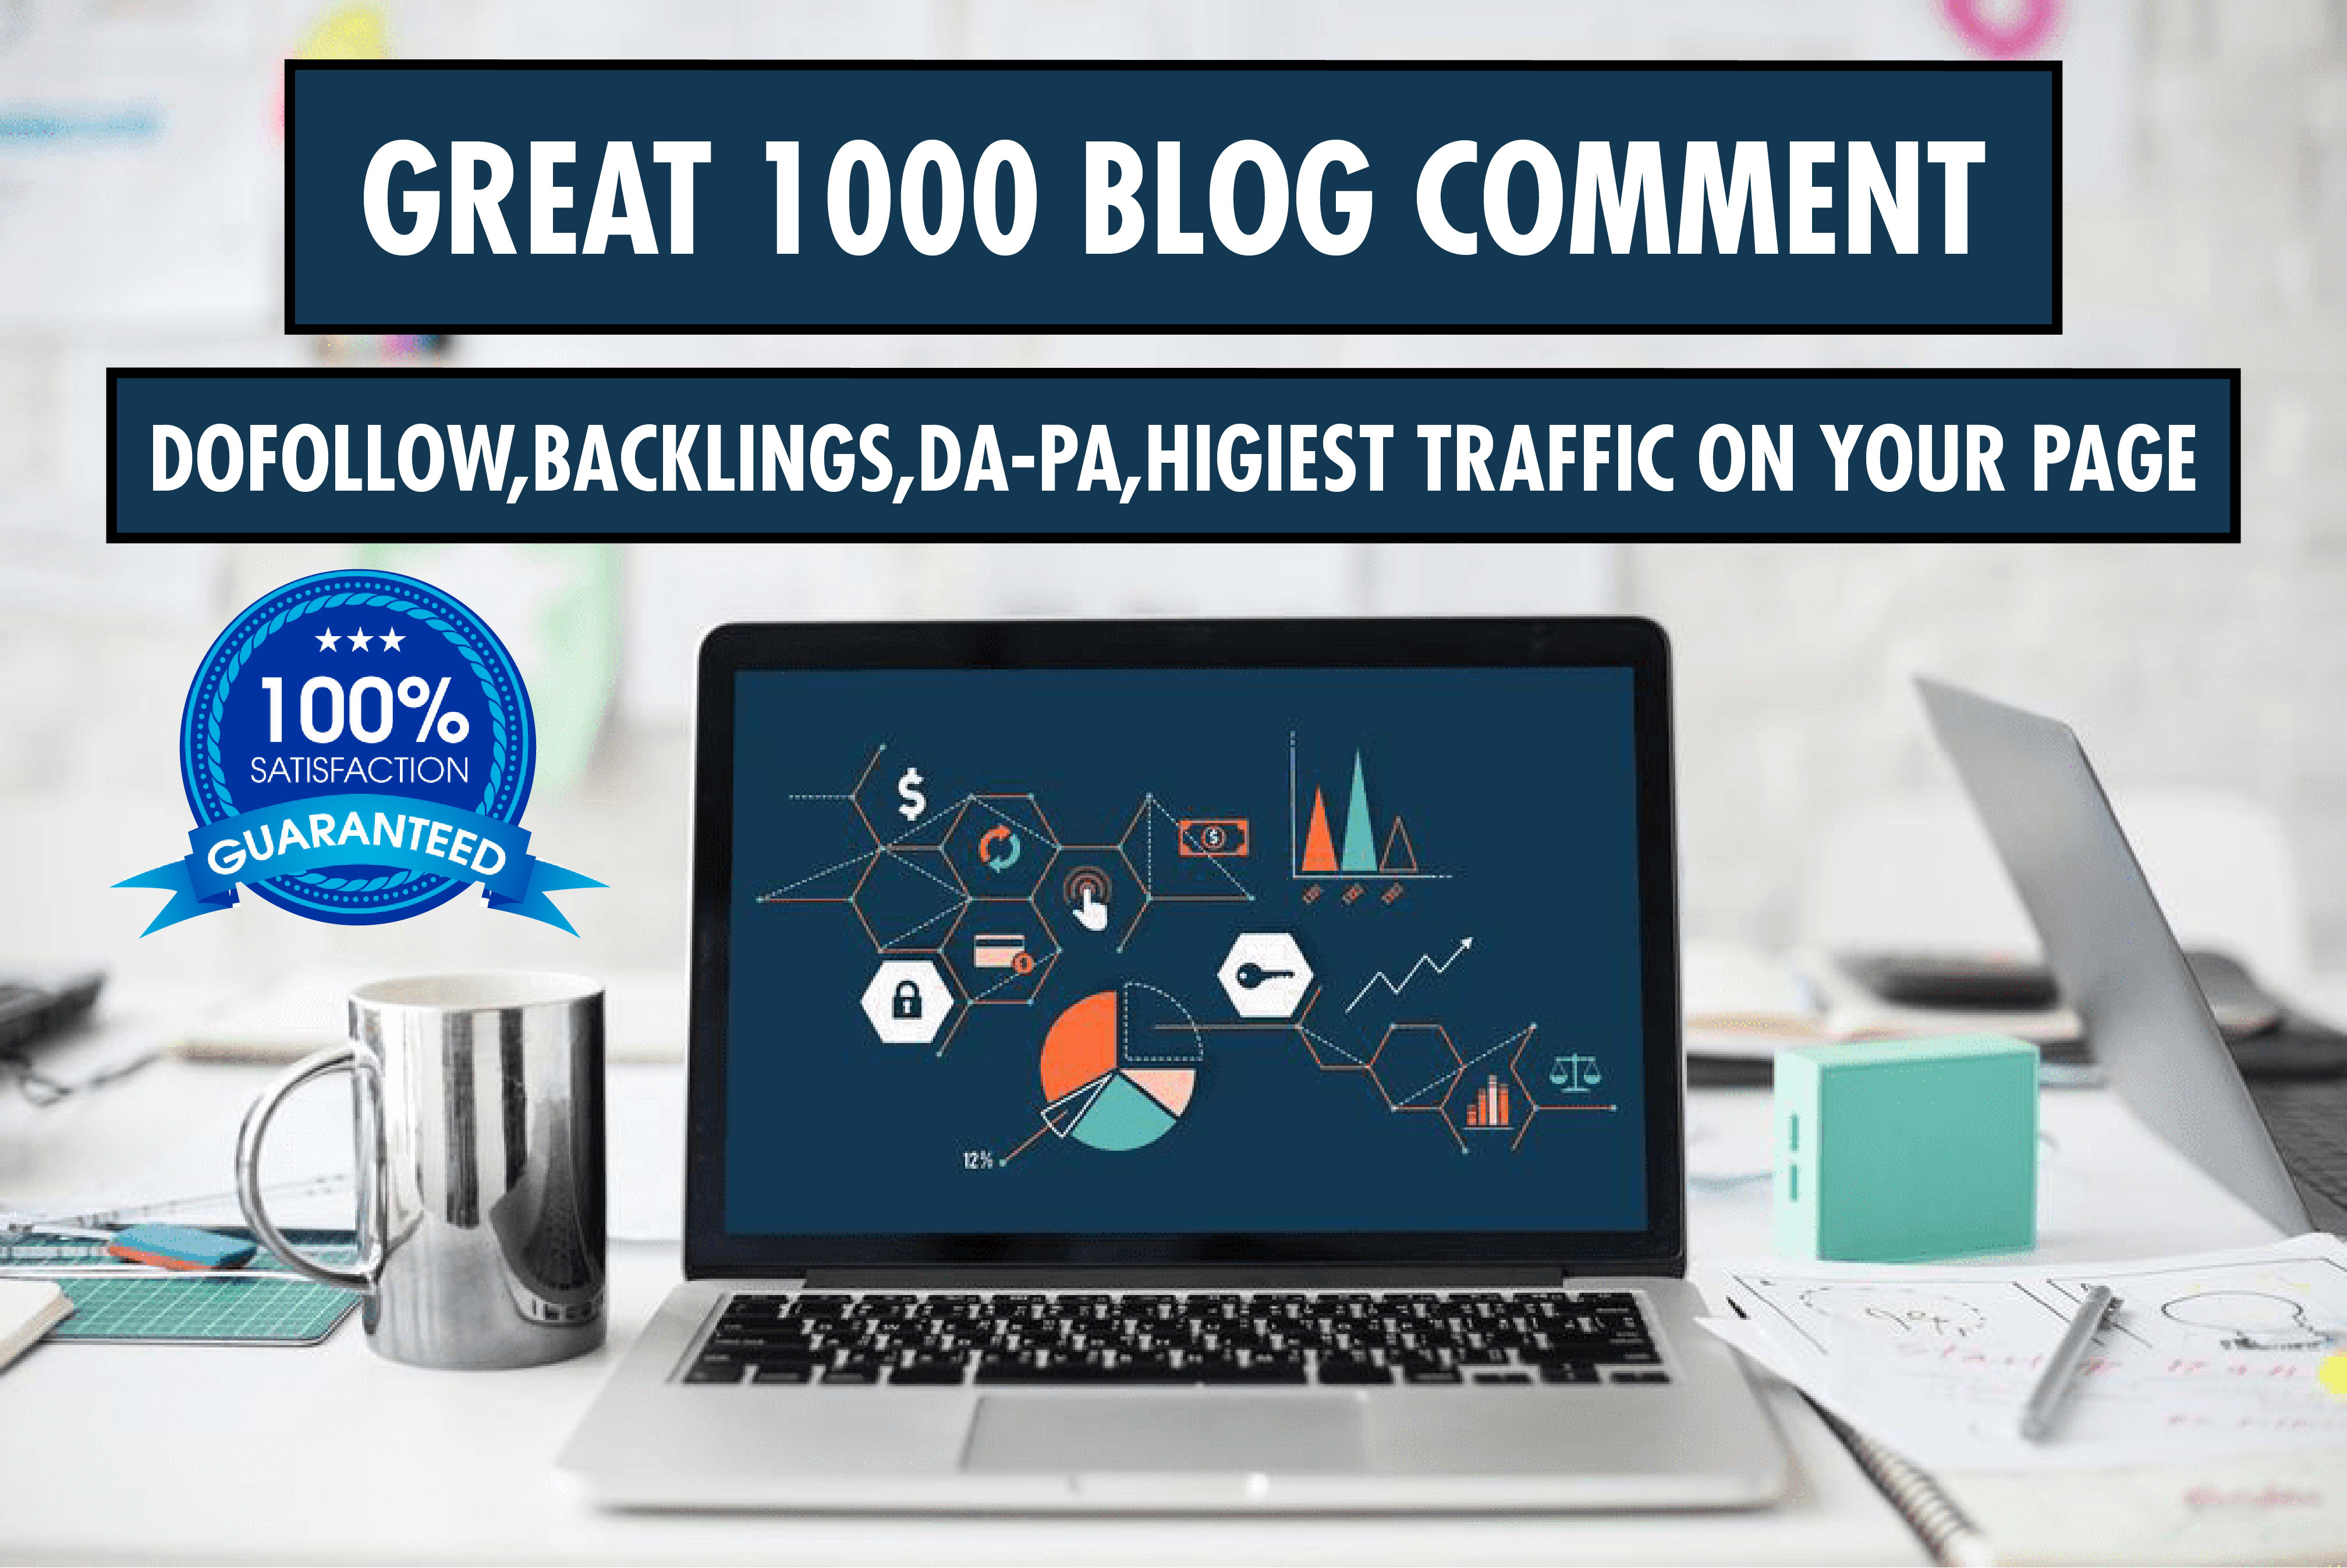 manually 1000 blog comment backlinks with google top ranking